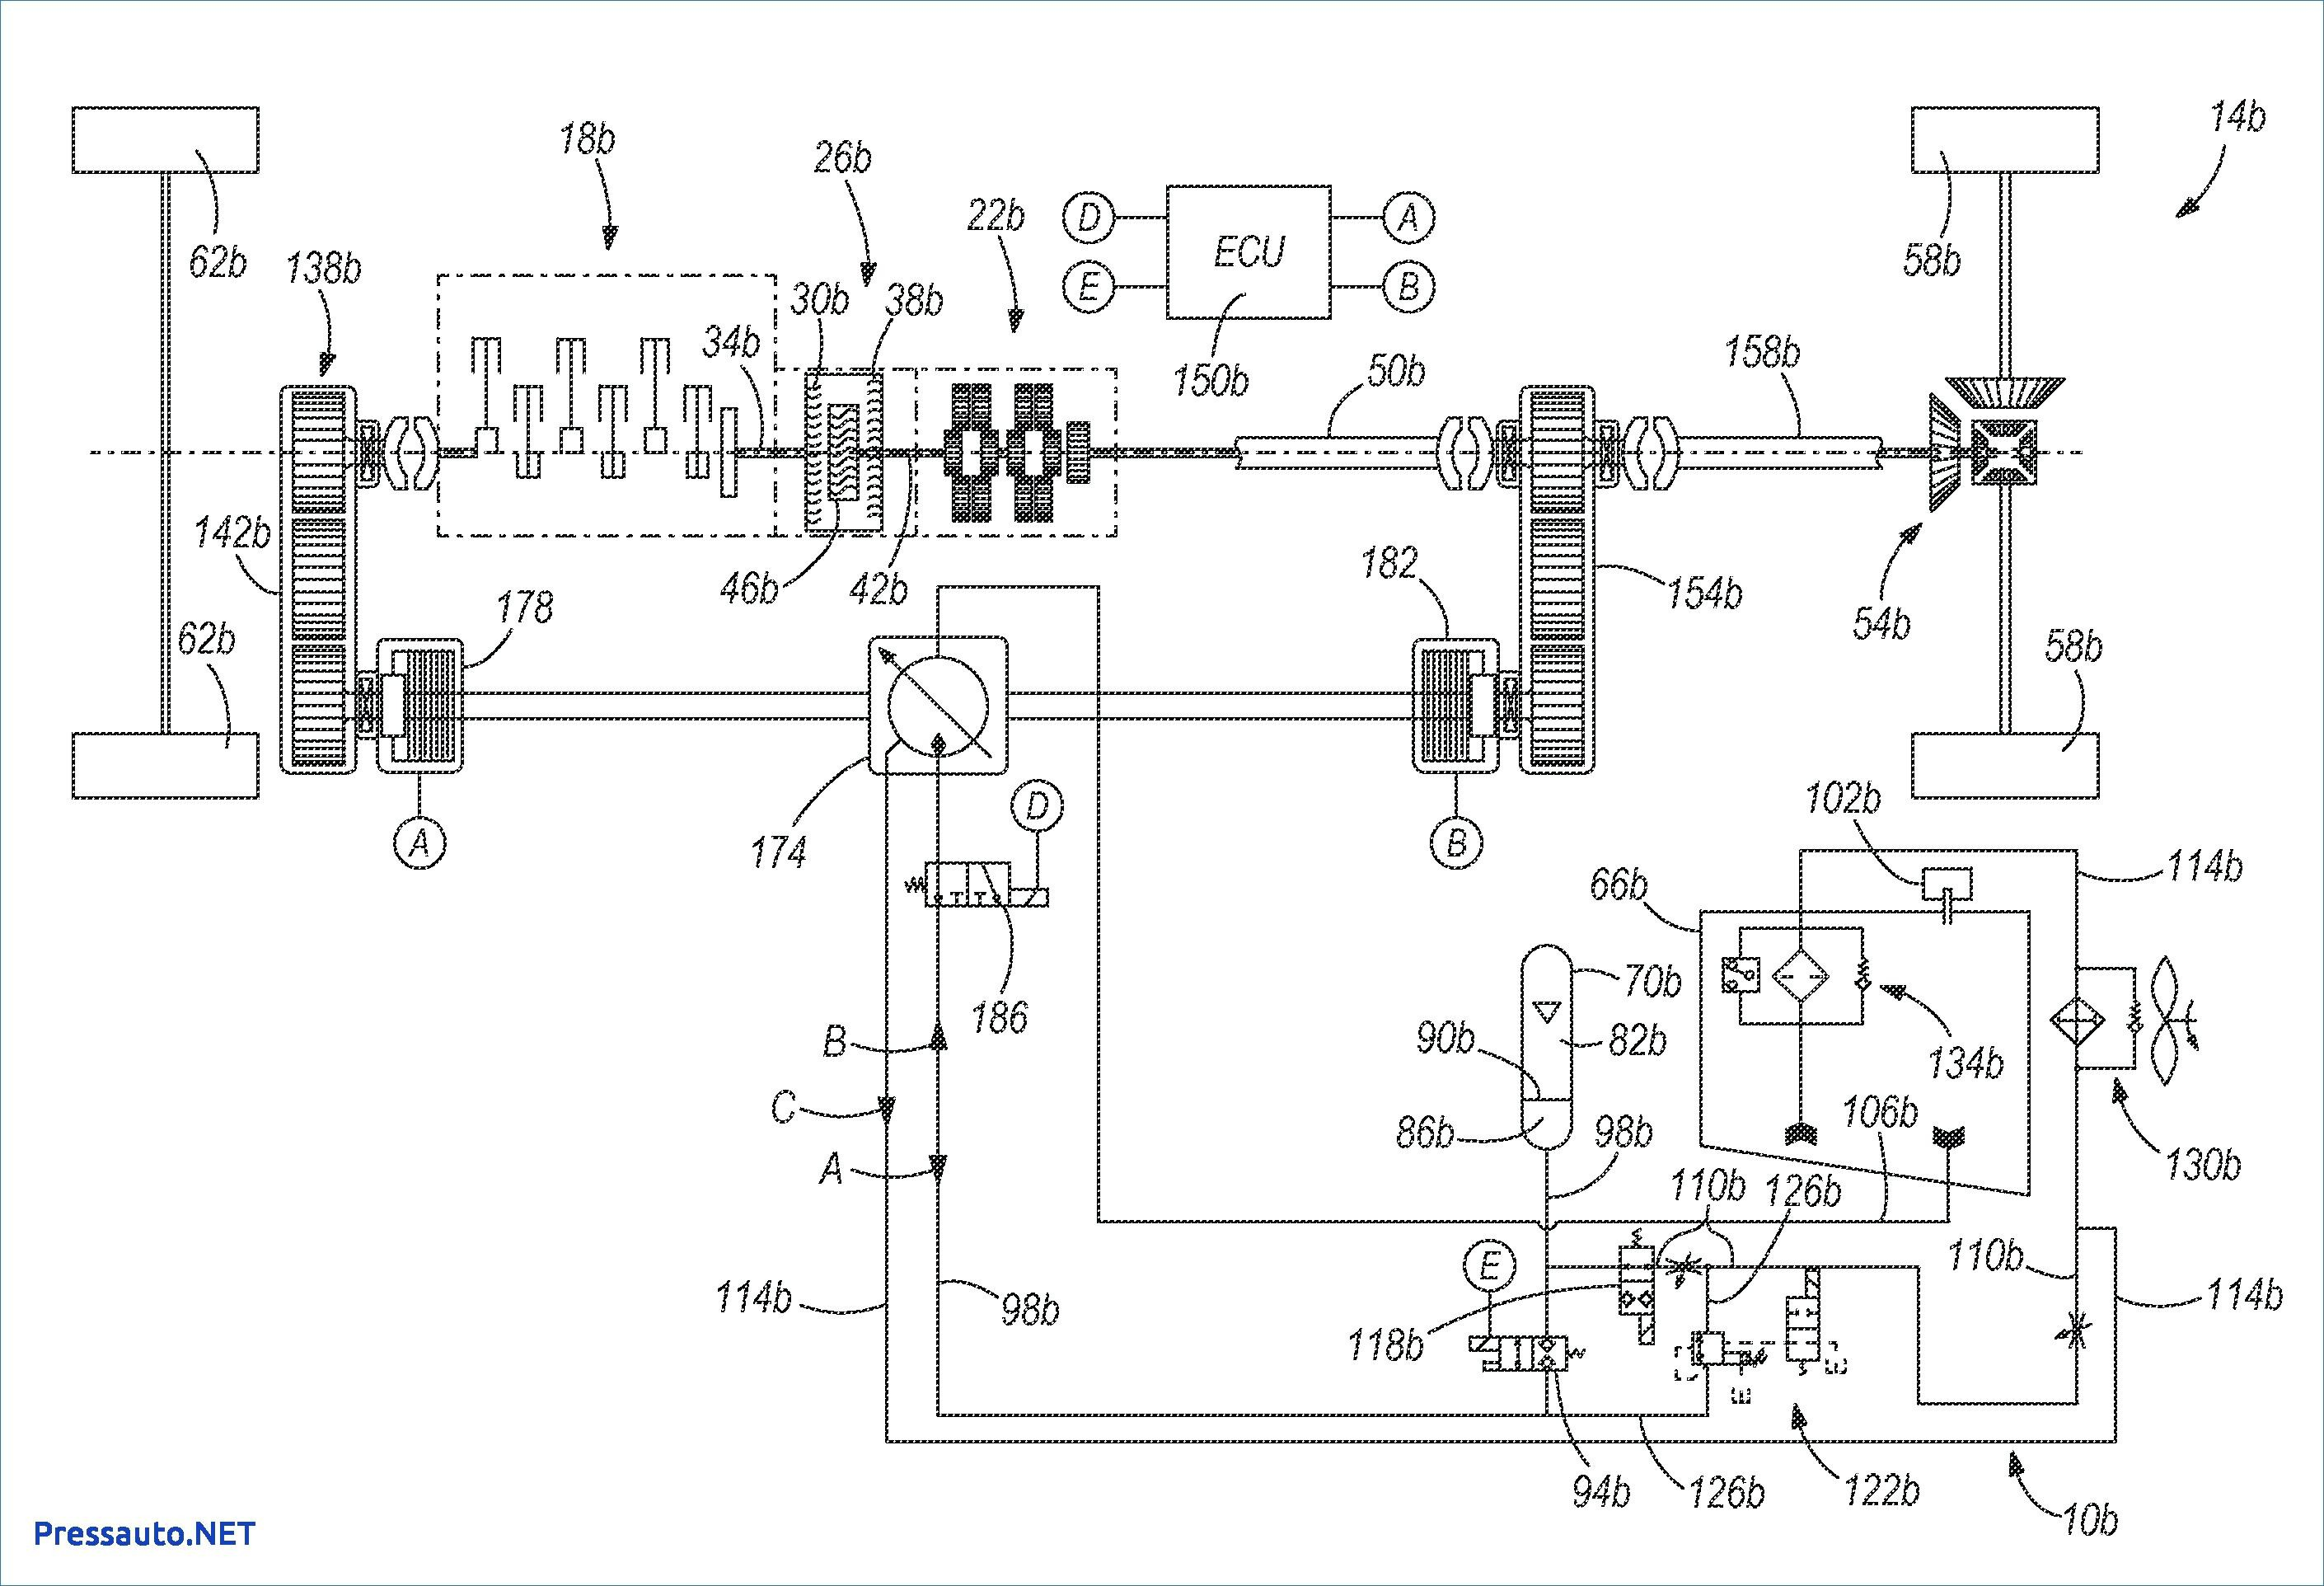 Truck Wiring Schematic International Truck Wiring Diagram - WIRE ...